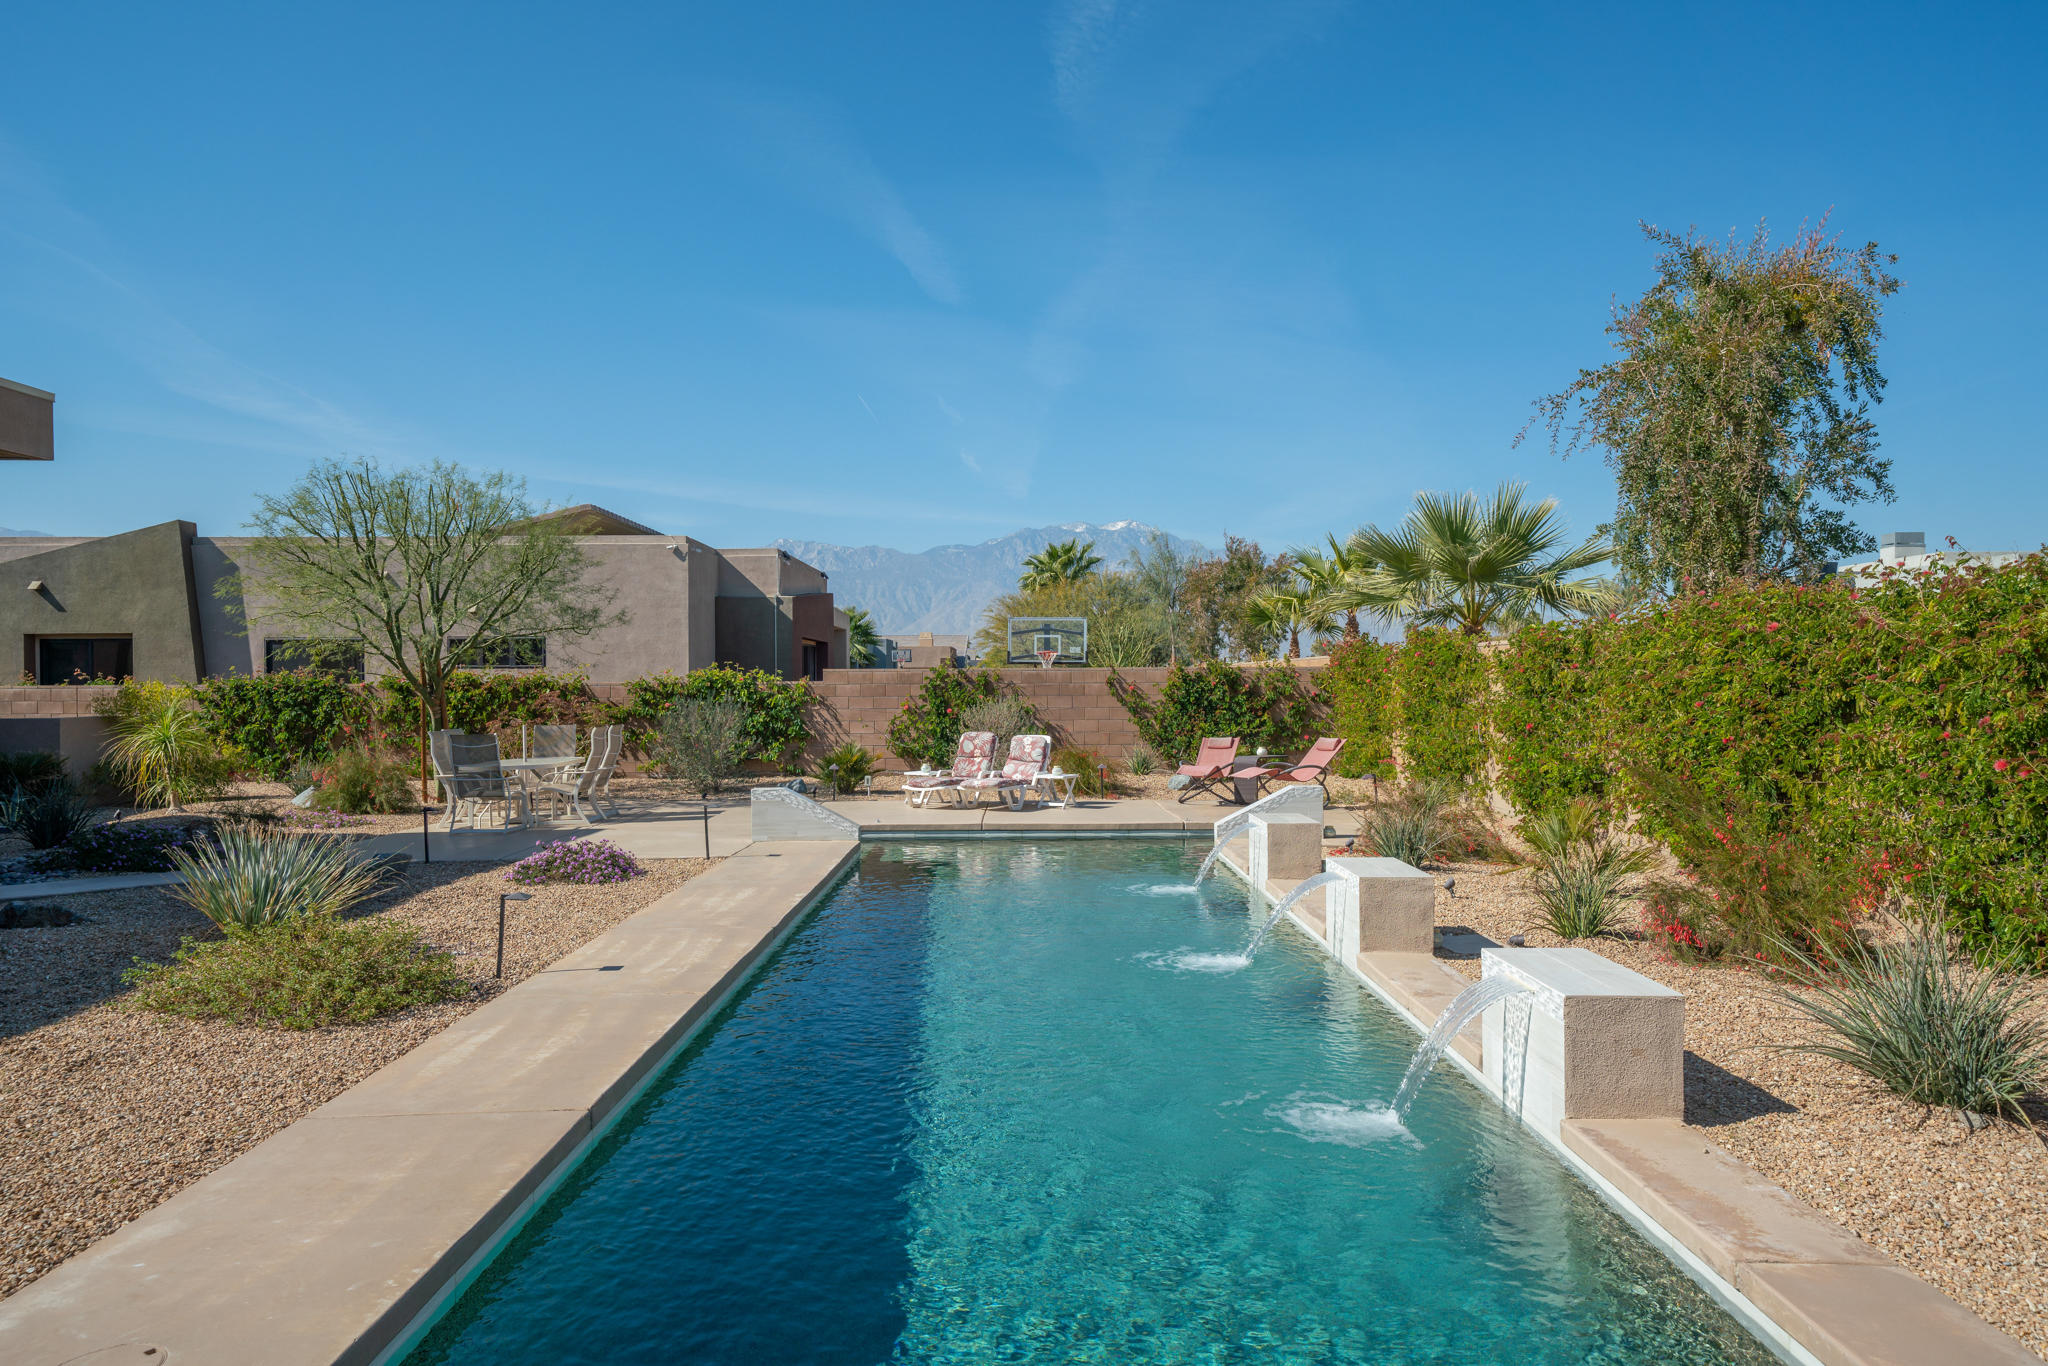 40 Via Noela, Rancho Mirage, California 92270, 3 Bedrooms Bedrooms, ,4 BathroomsBathrooms,Residential,For Sale,40 Via Noela,219042628